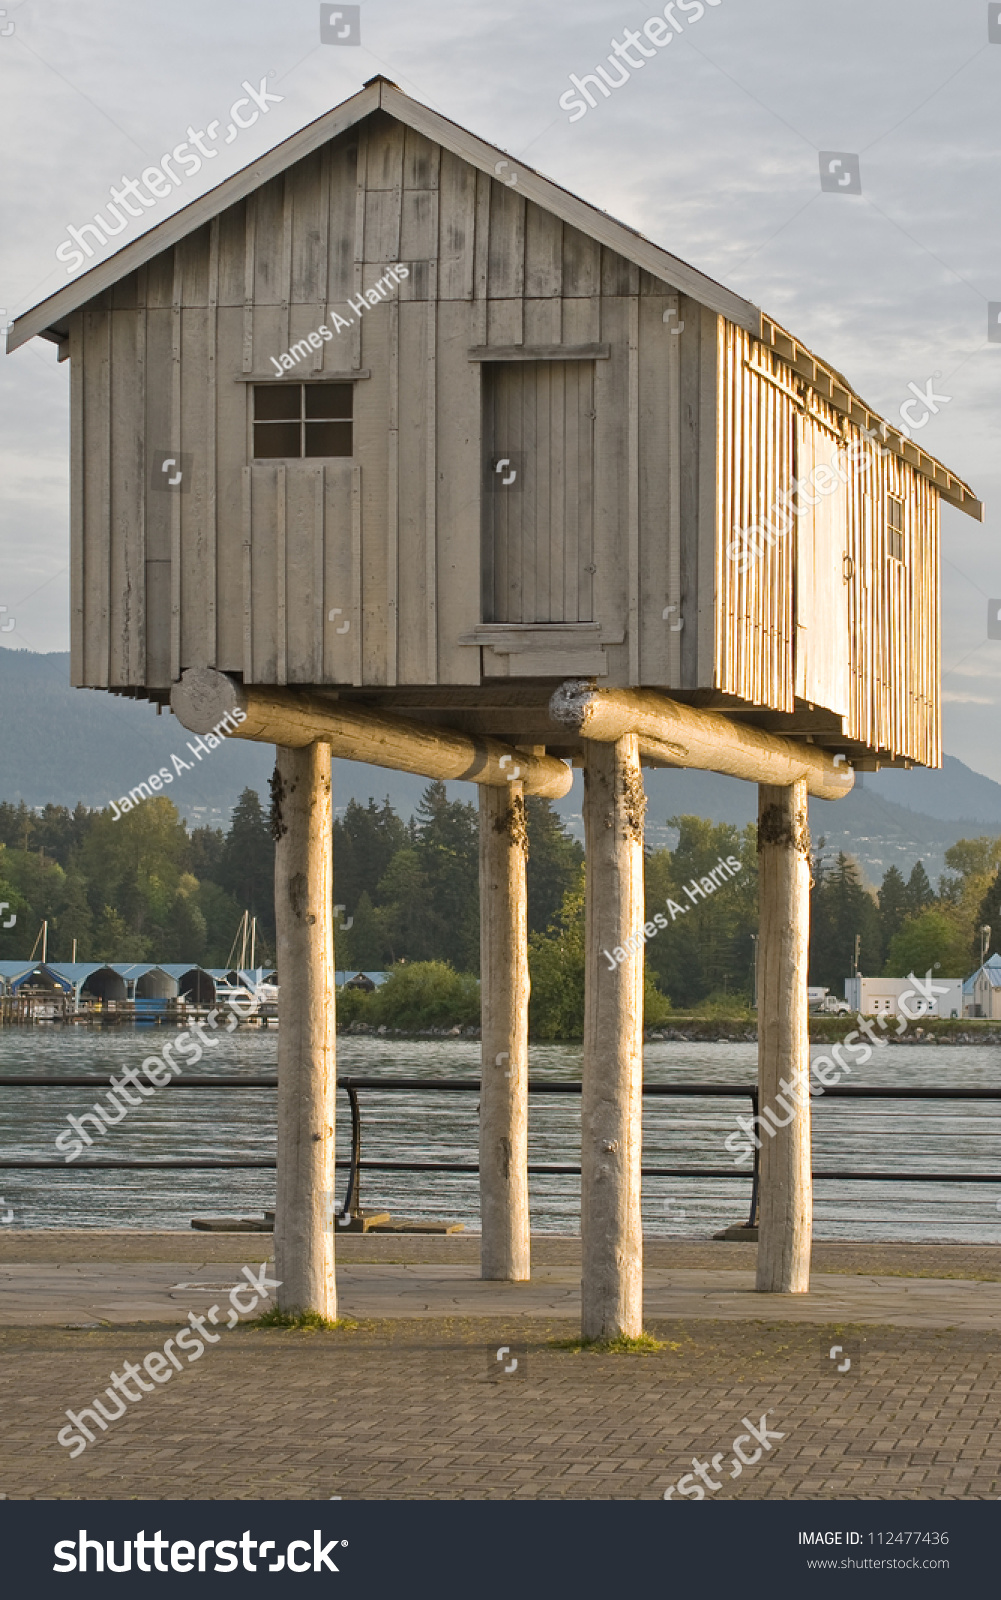 A wonky house on stilts in harbour green park vancouver bc